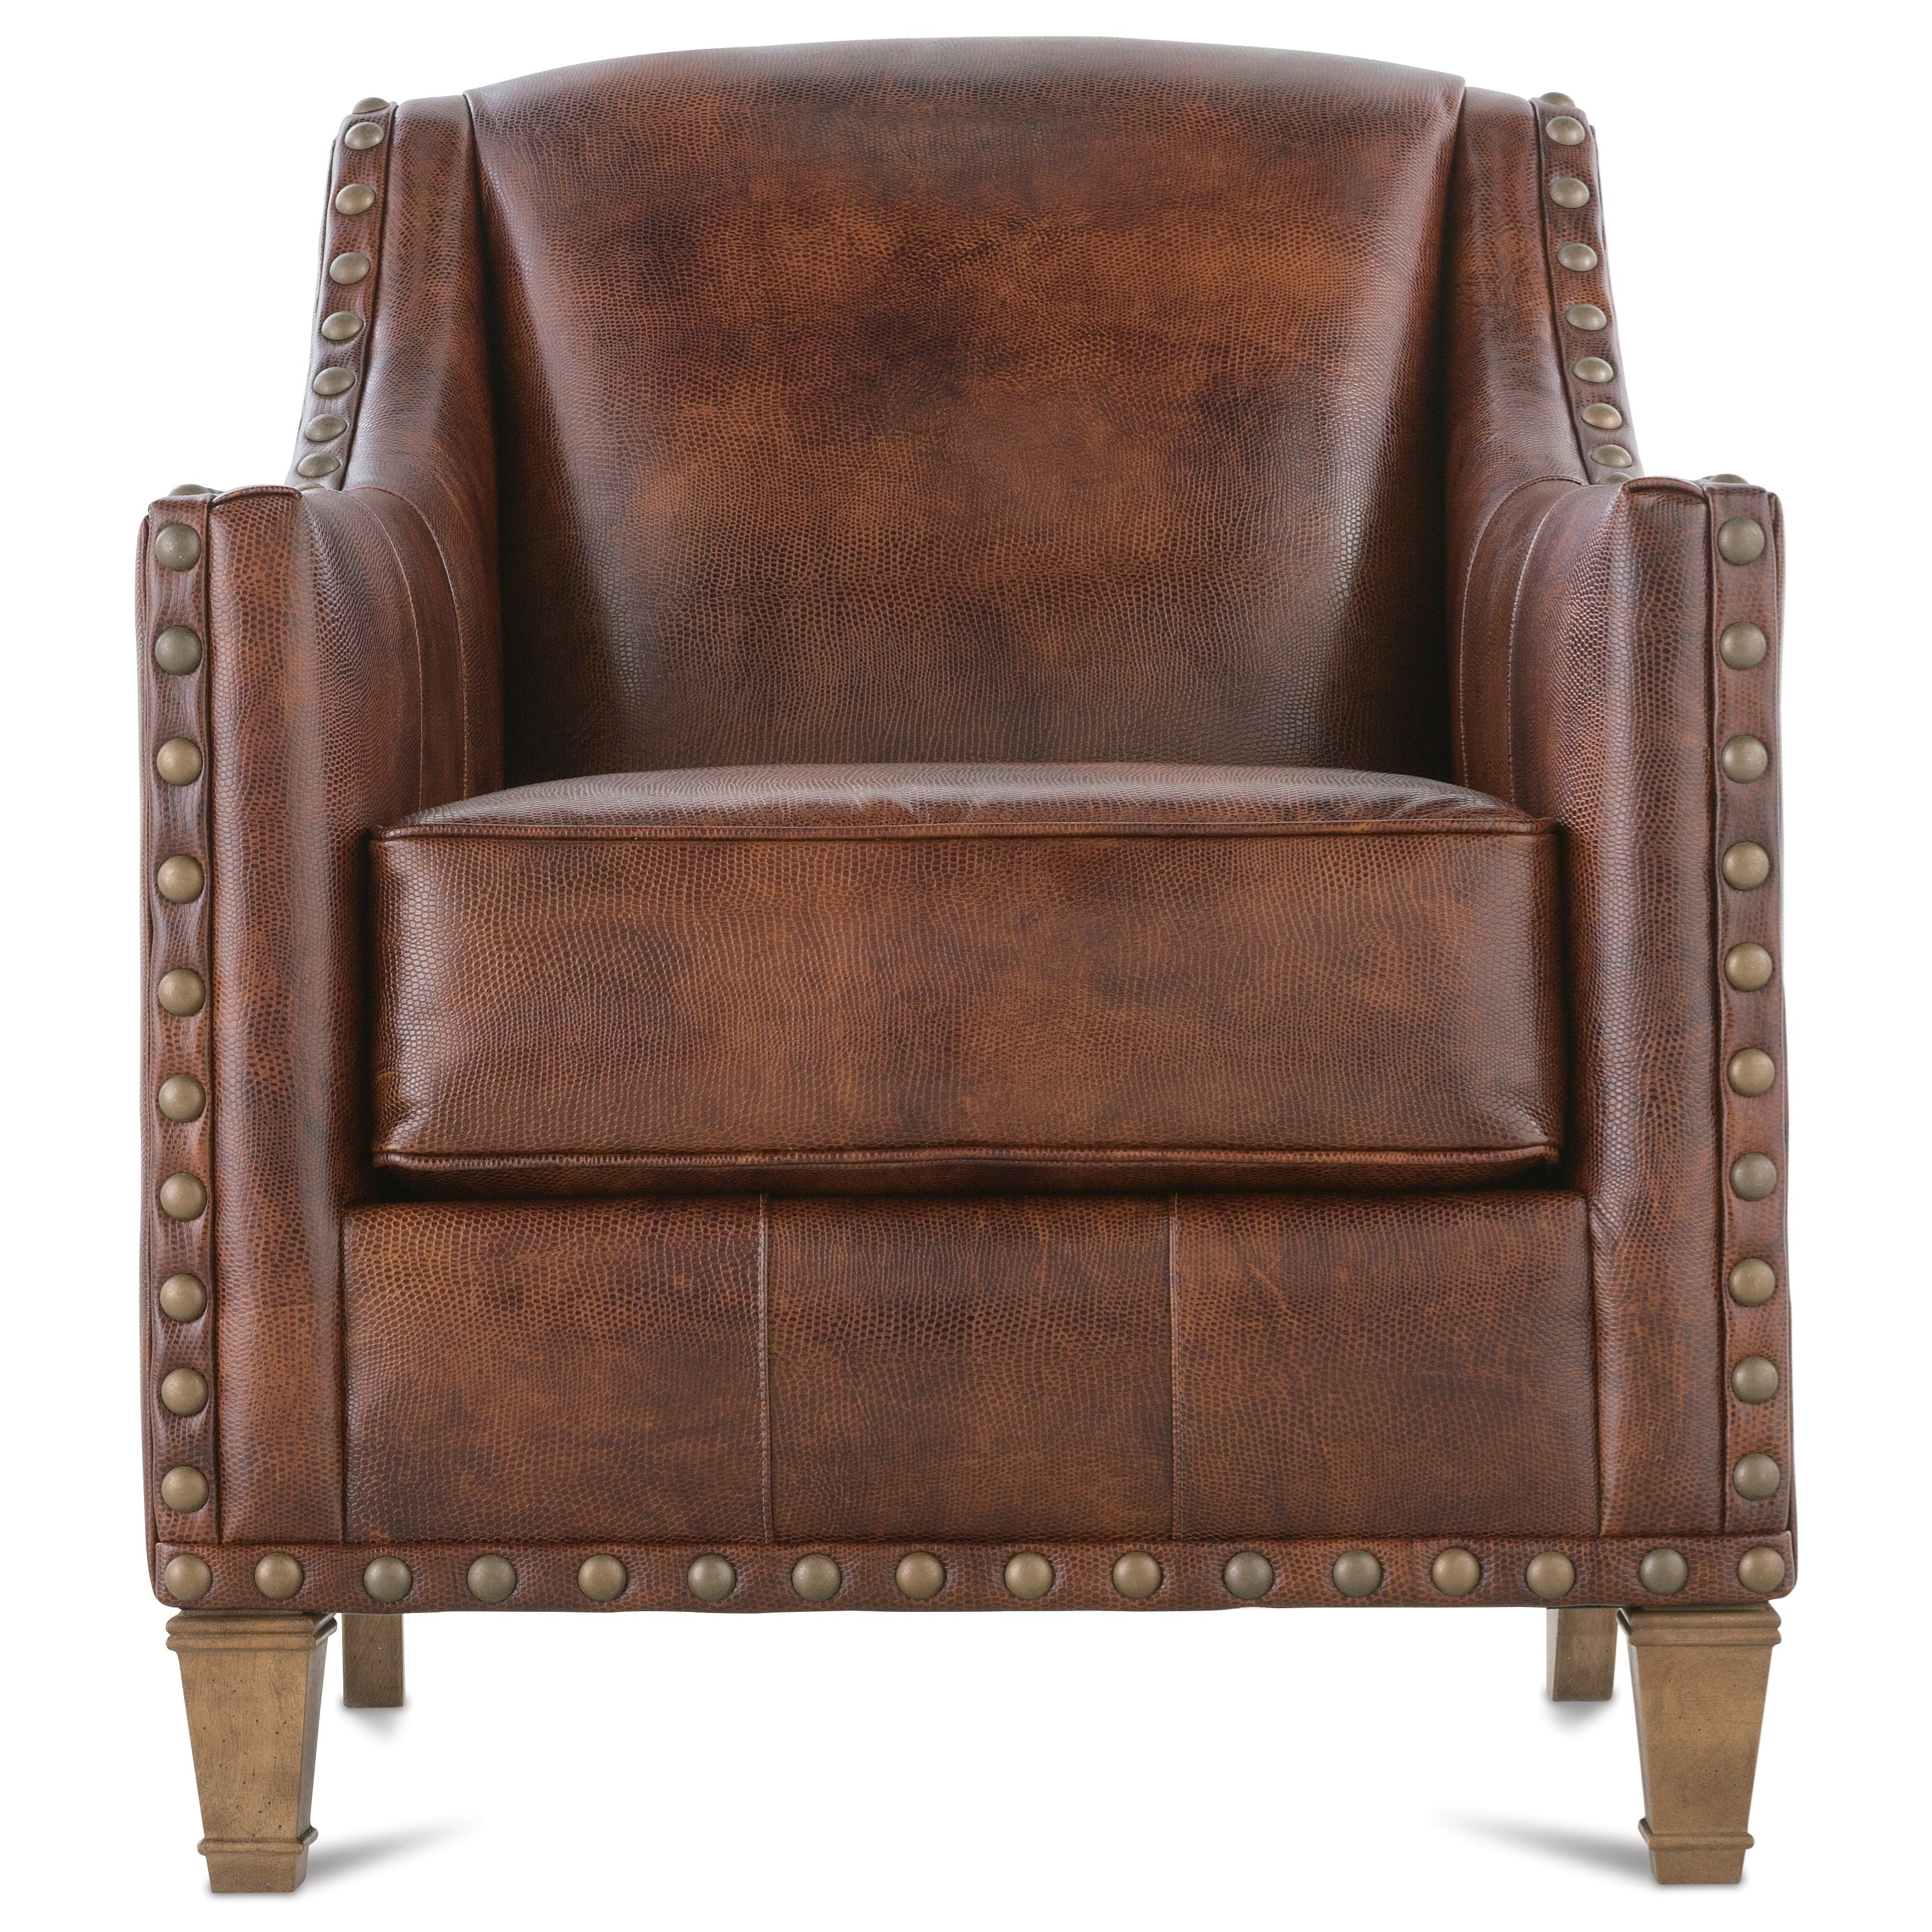 Rowe RockfordTraditional Upholstered Chair ...